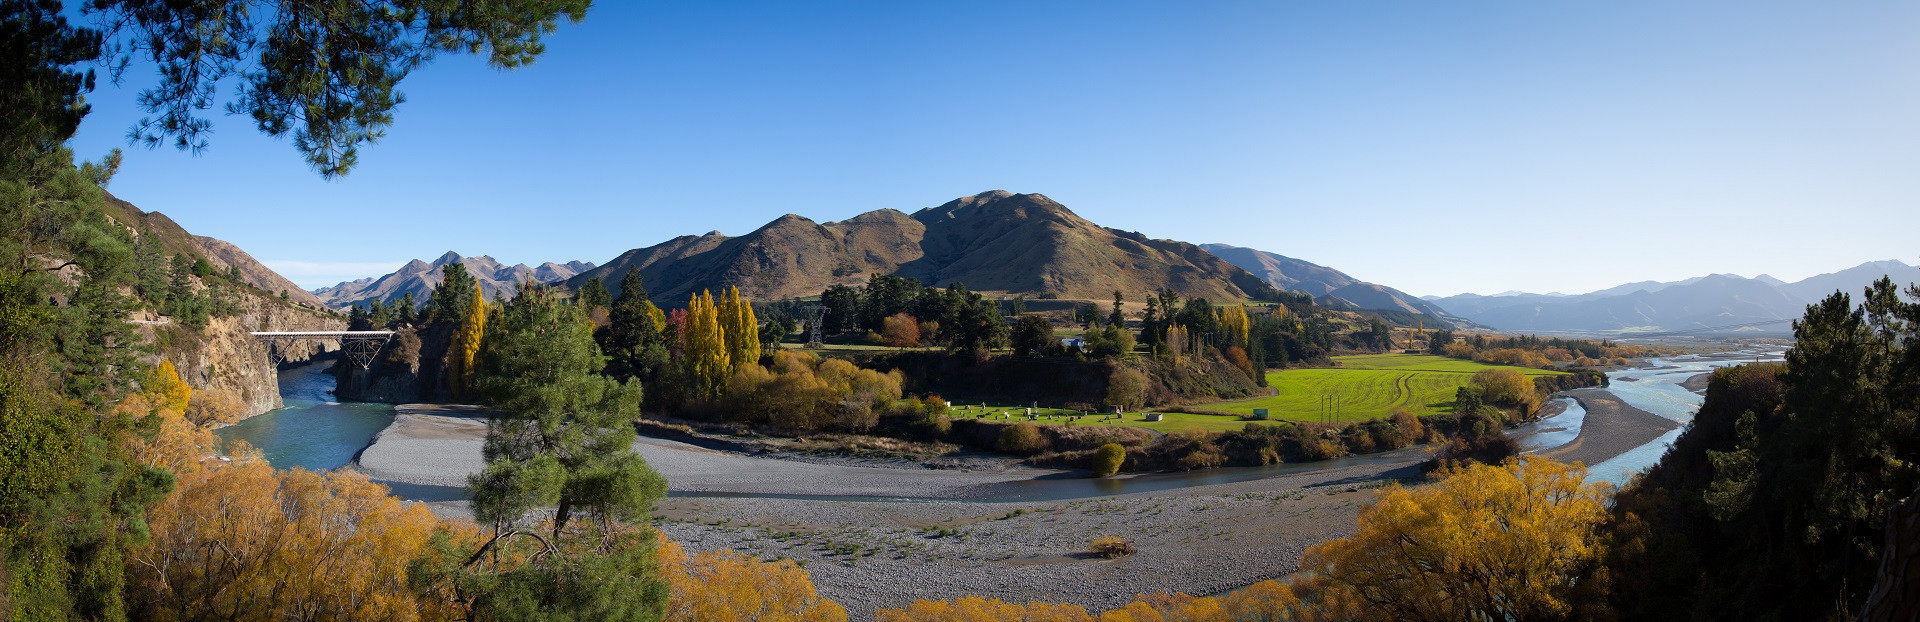 hanmer_springs_view.jpg